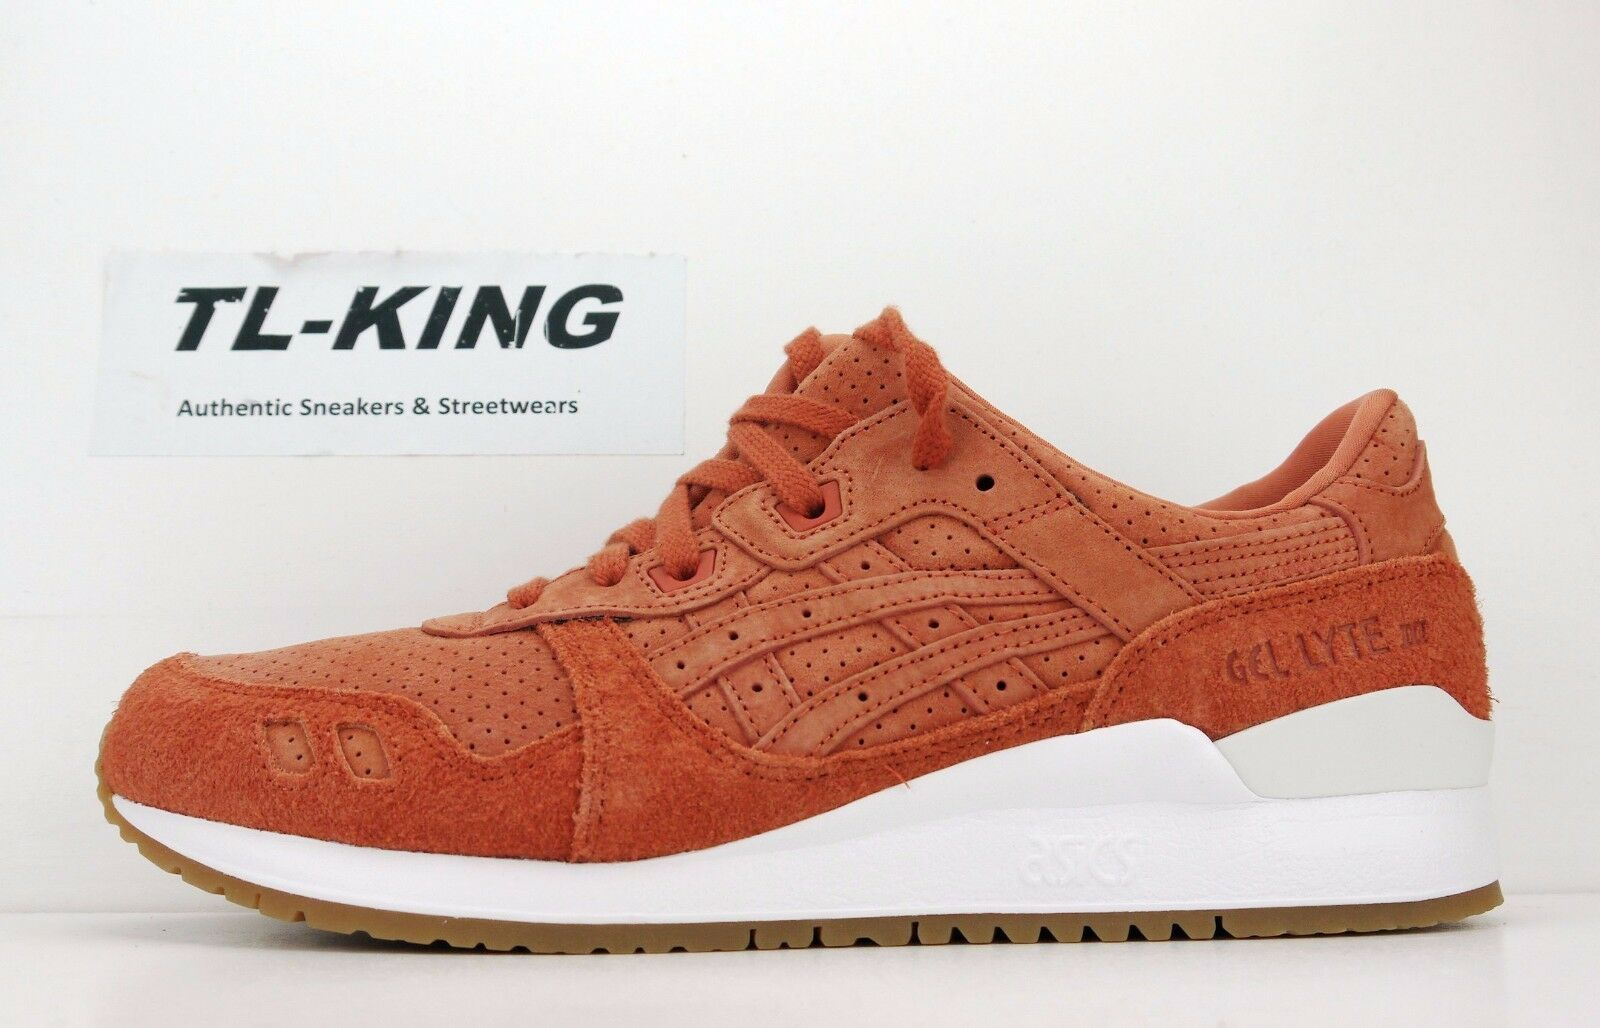 Asics Gel-Lyte III Spice Route Classic  HL7X3 3030 Msrp  120 IF